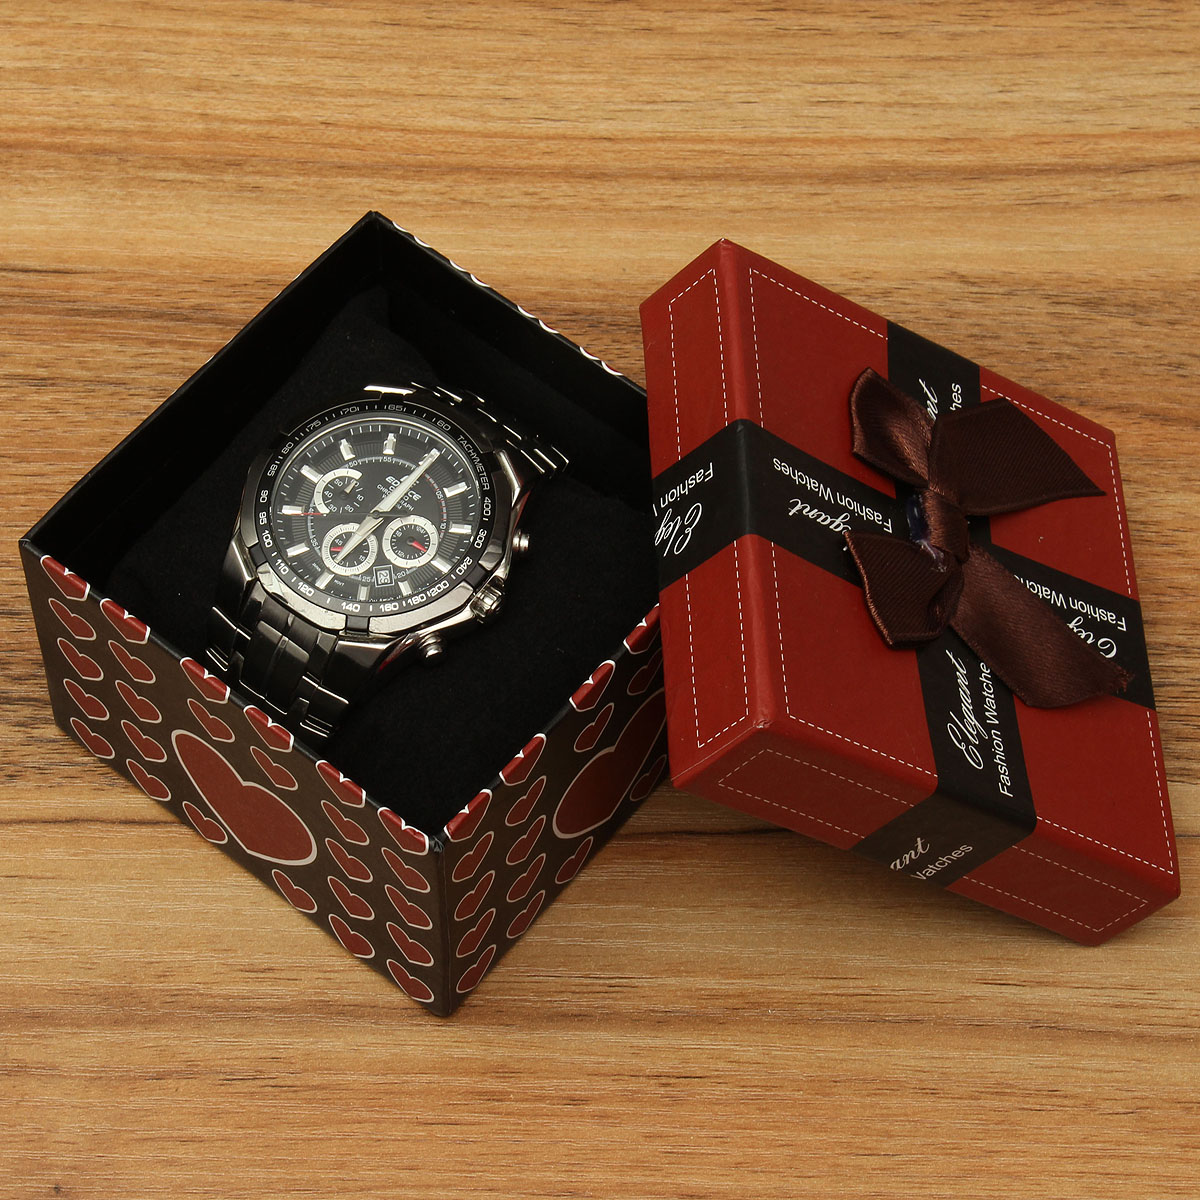 Watch Bracelet Jewelry Gift Square Box Case Storage Holder